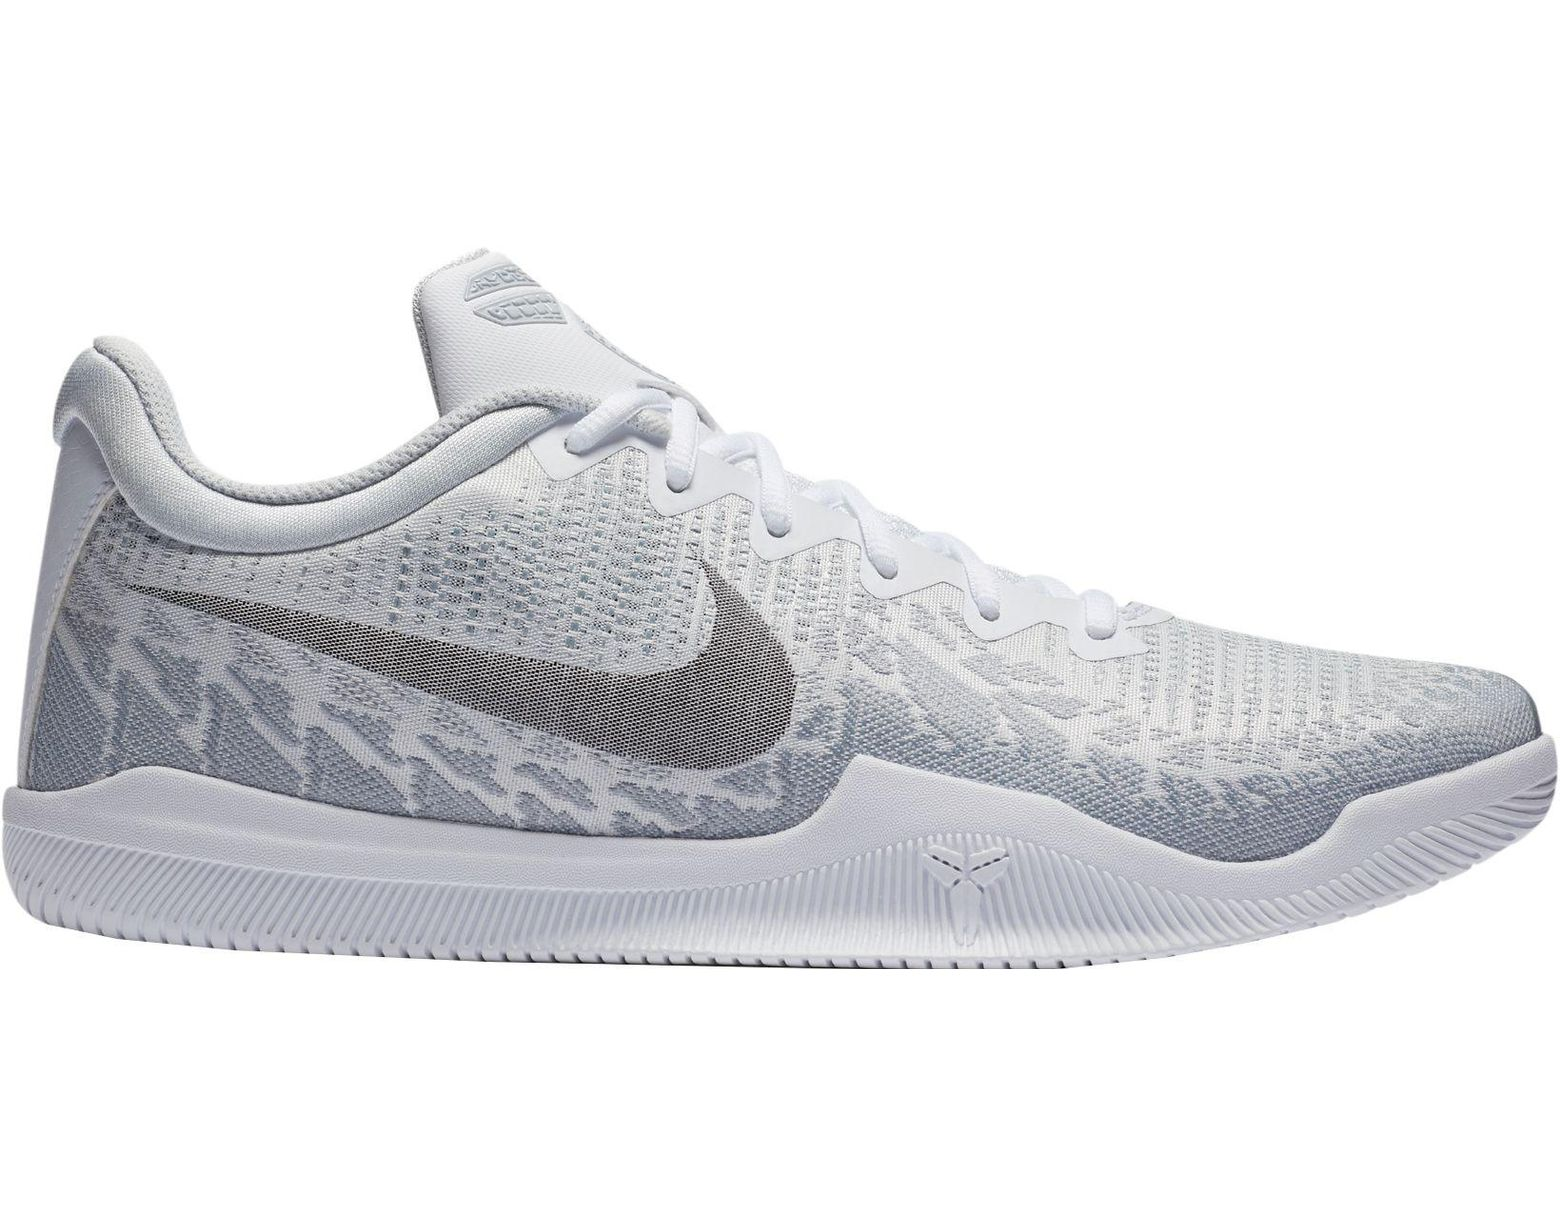 cheap for discount 9479d 62e0f Nike Kobe Mamba Rage Basketball Shoes in White for Men - Lyst